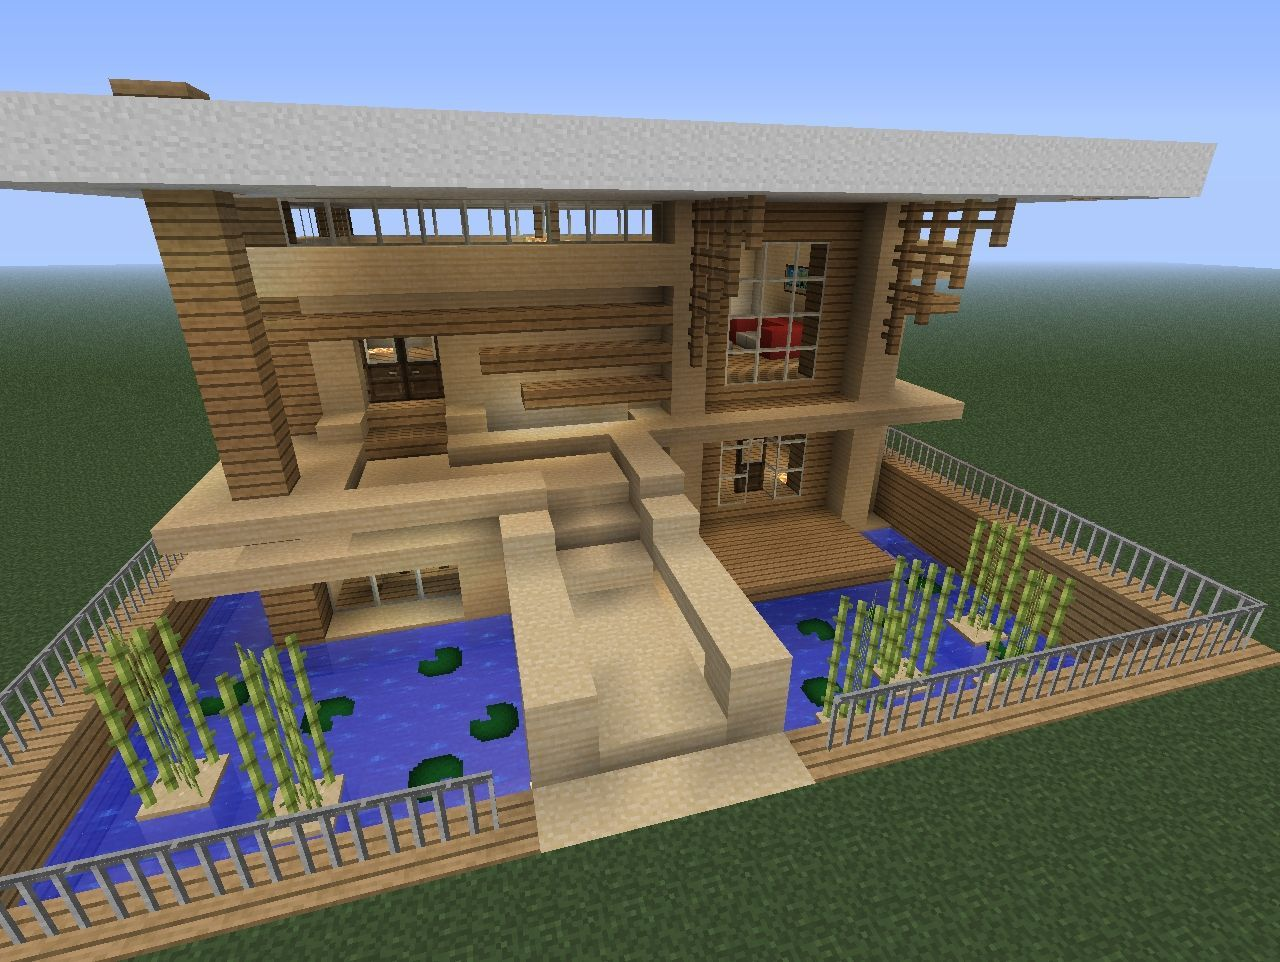 1000 ideas about minecraft houses on pinterest minecraft minecraft ideas and cool minecraft houses